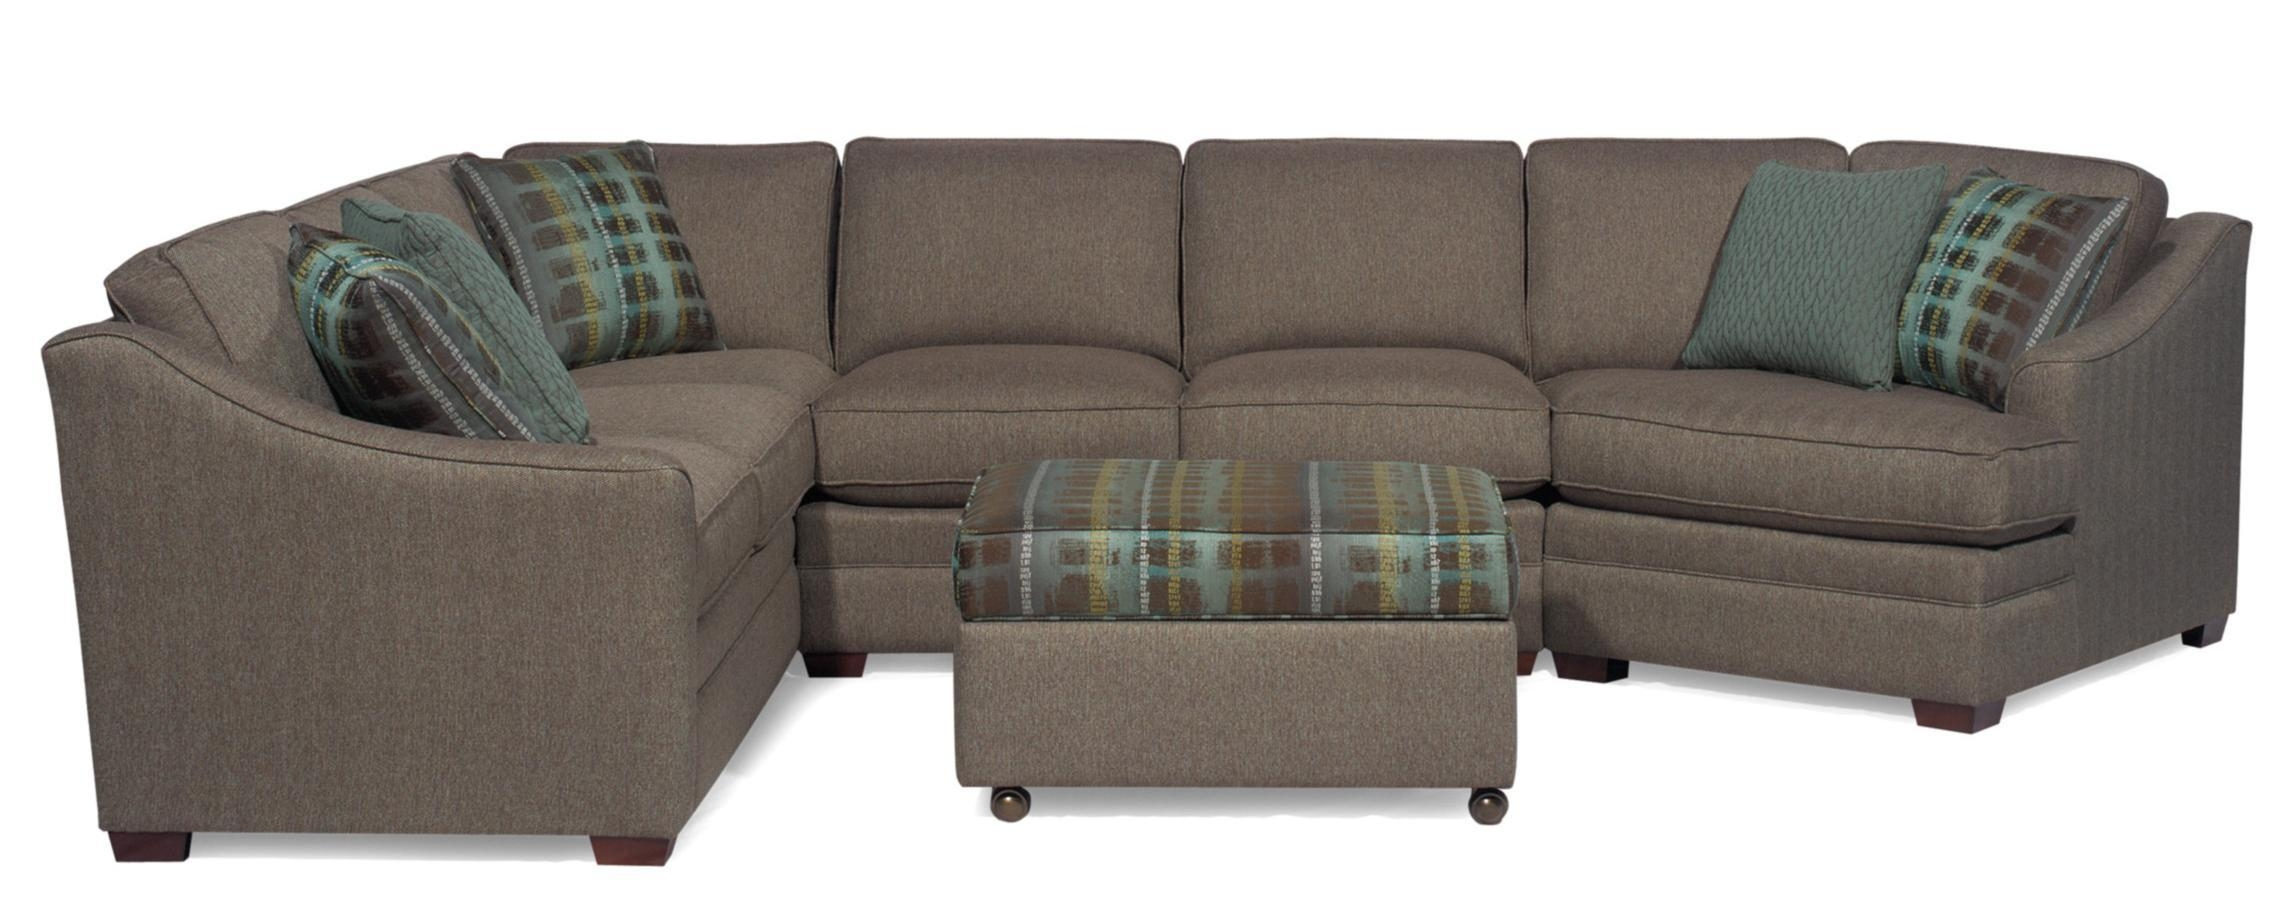 B>Customizable</b> 3 Piece Sectional With Laf Cuddler Throughout Craftmaster Sectional (Image 2 of 15)